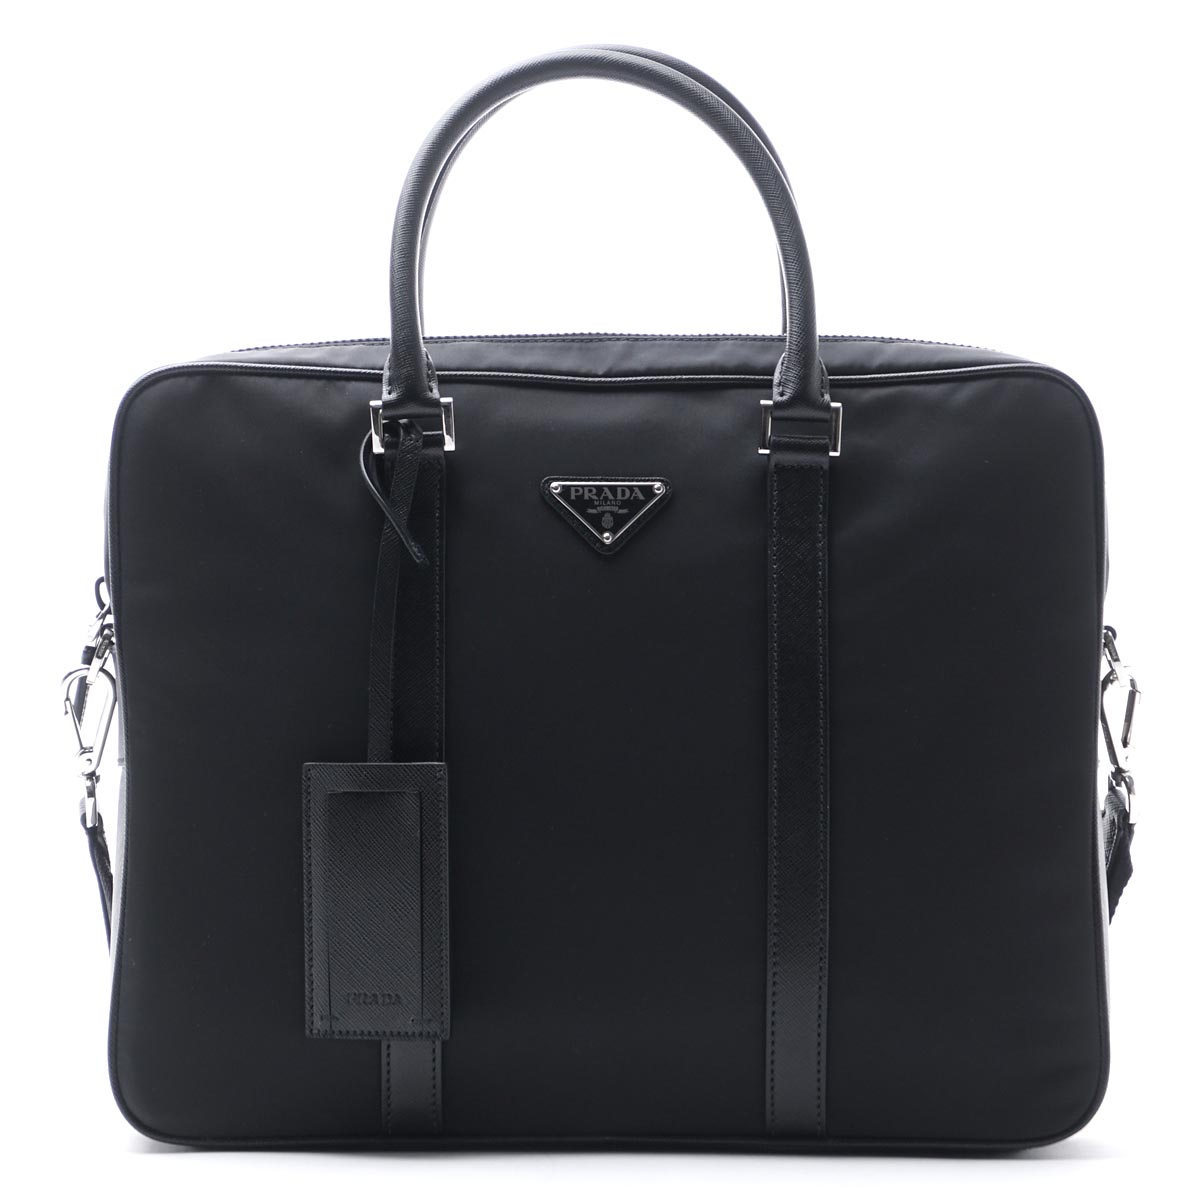 Prada Tote Men | Prada Briefcase | Prada Watches Men